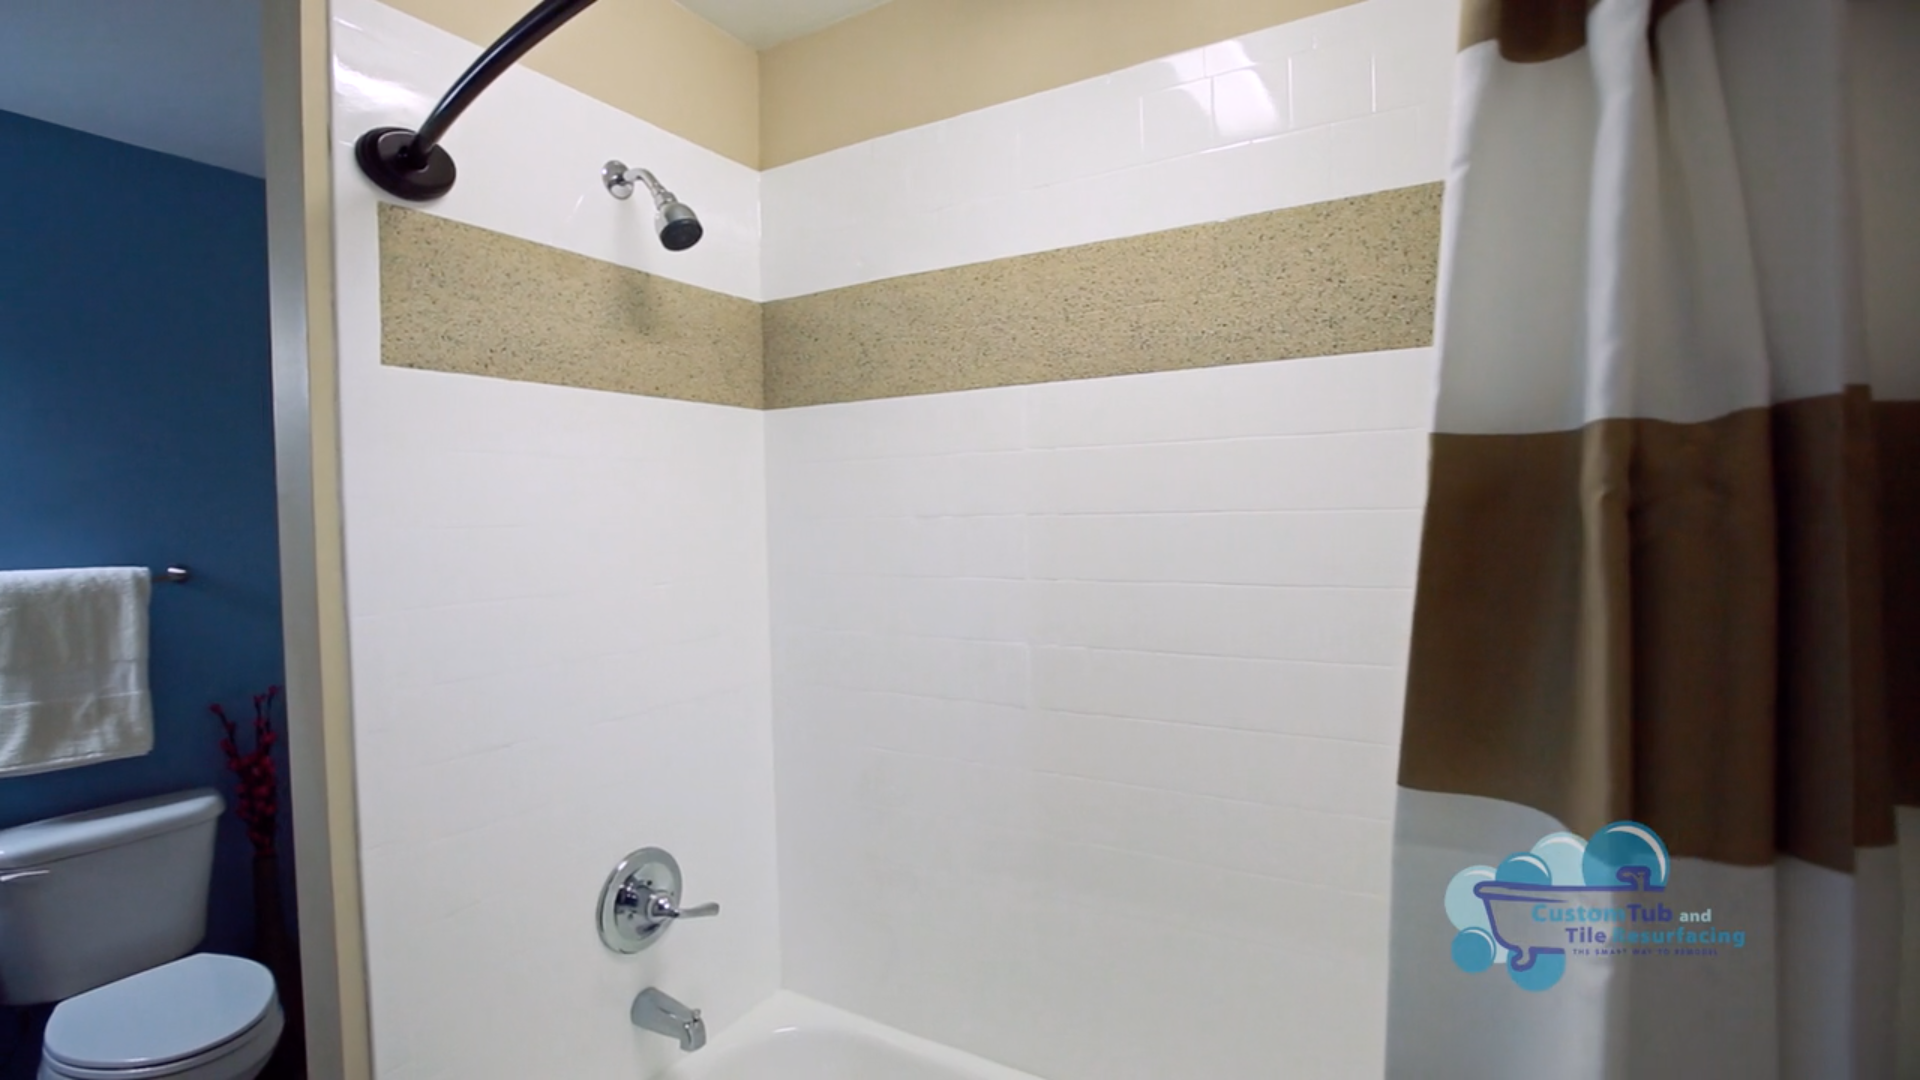 Bathroom Resurfacing Bathtub Refinishing & Resurfacing Professionals  Free Quote